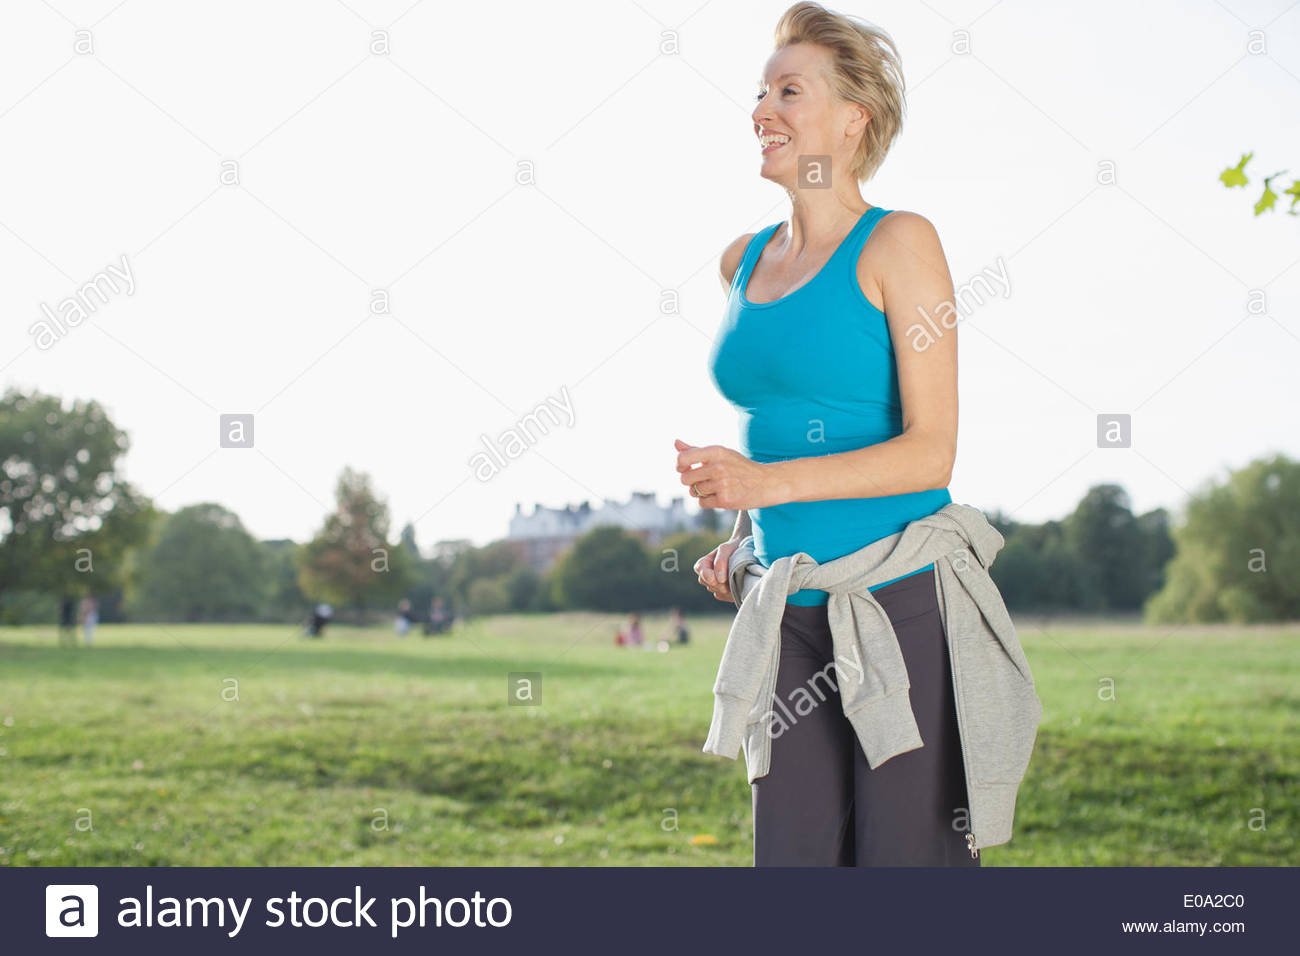 Smiling woman jogging in park - Stock Image